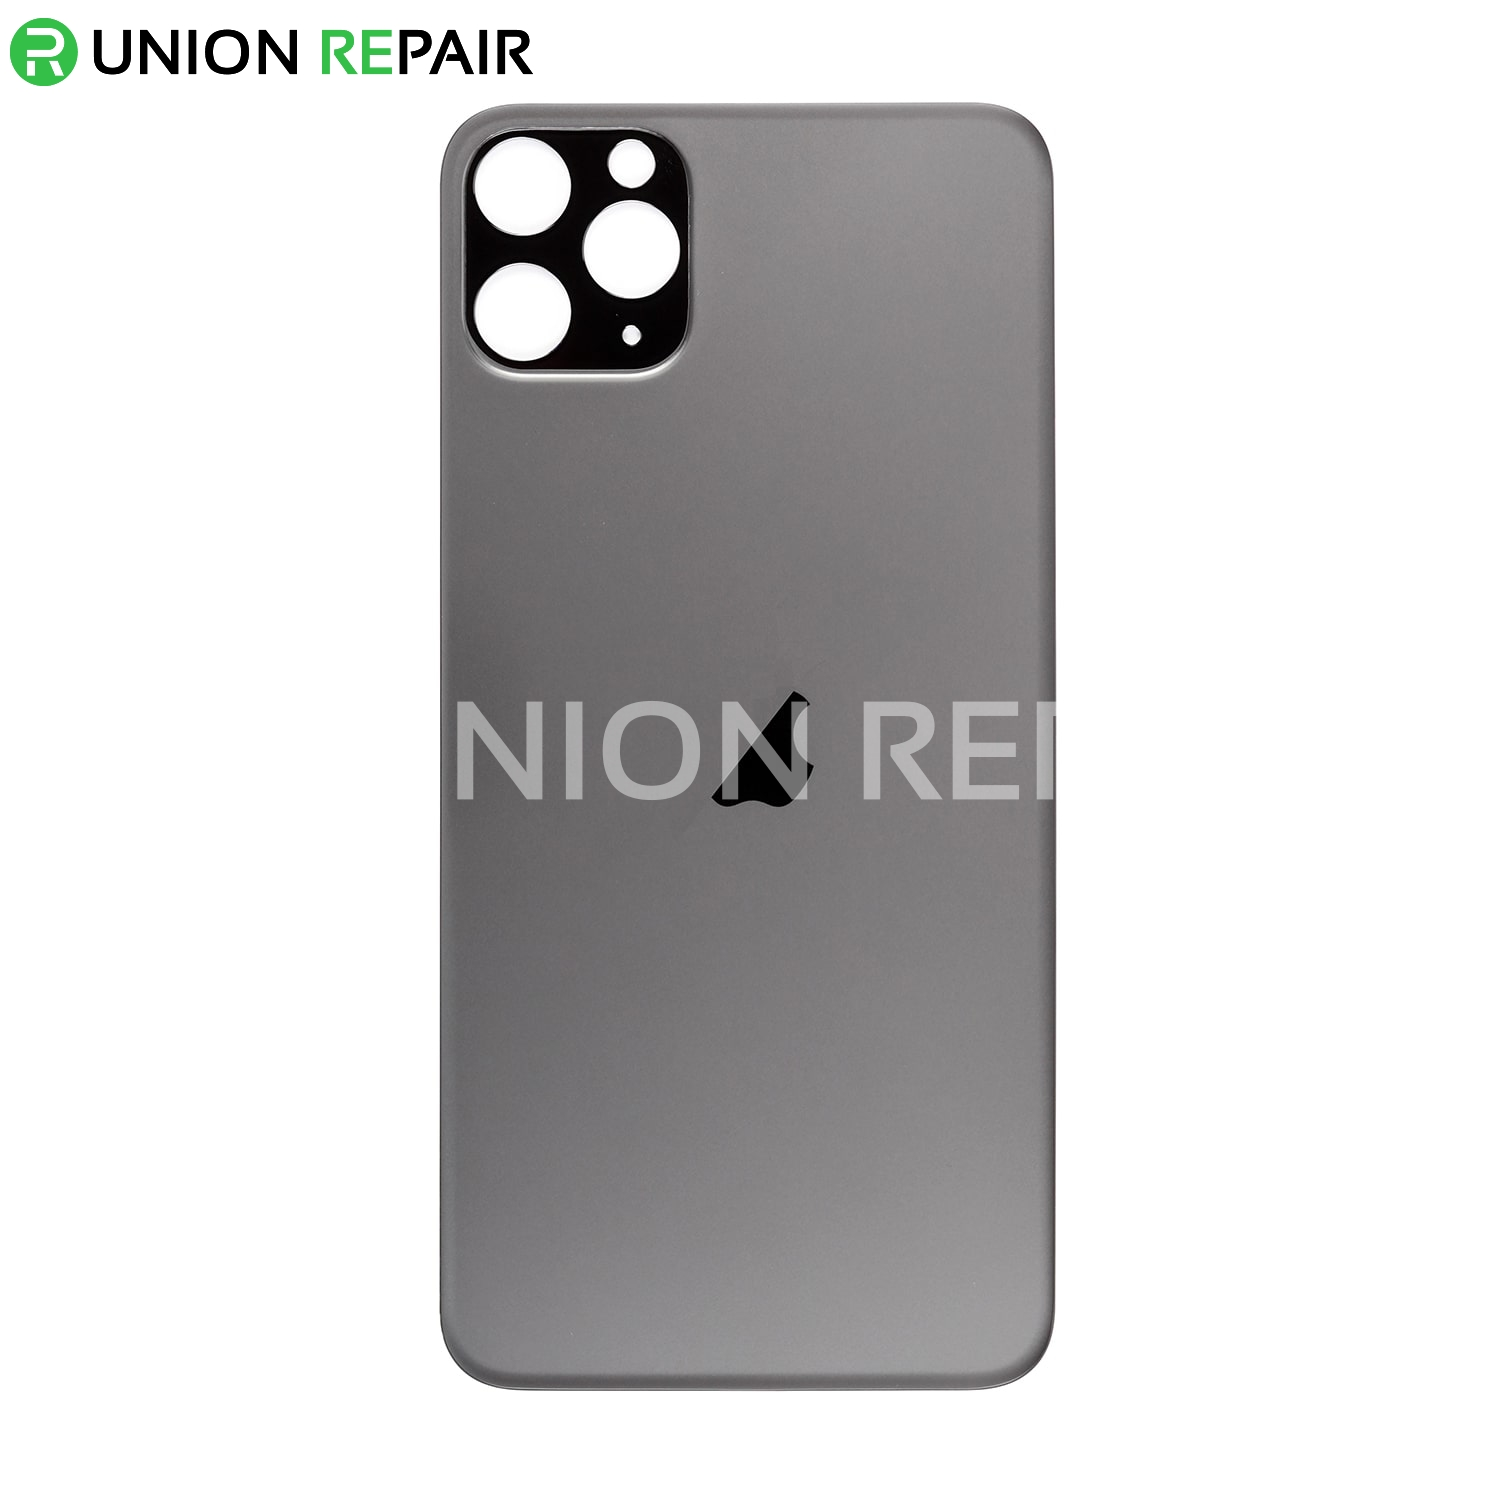 Replacement for iPhone 11 Pro Back Cover - Space Gray